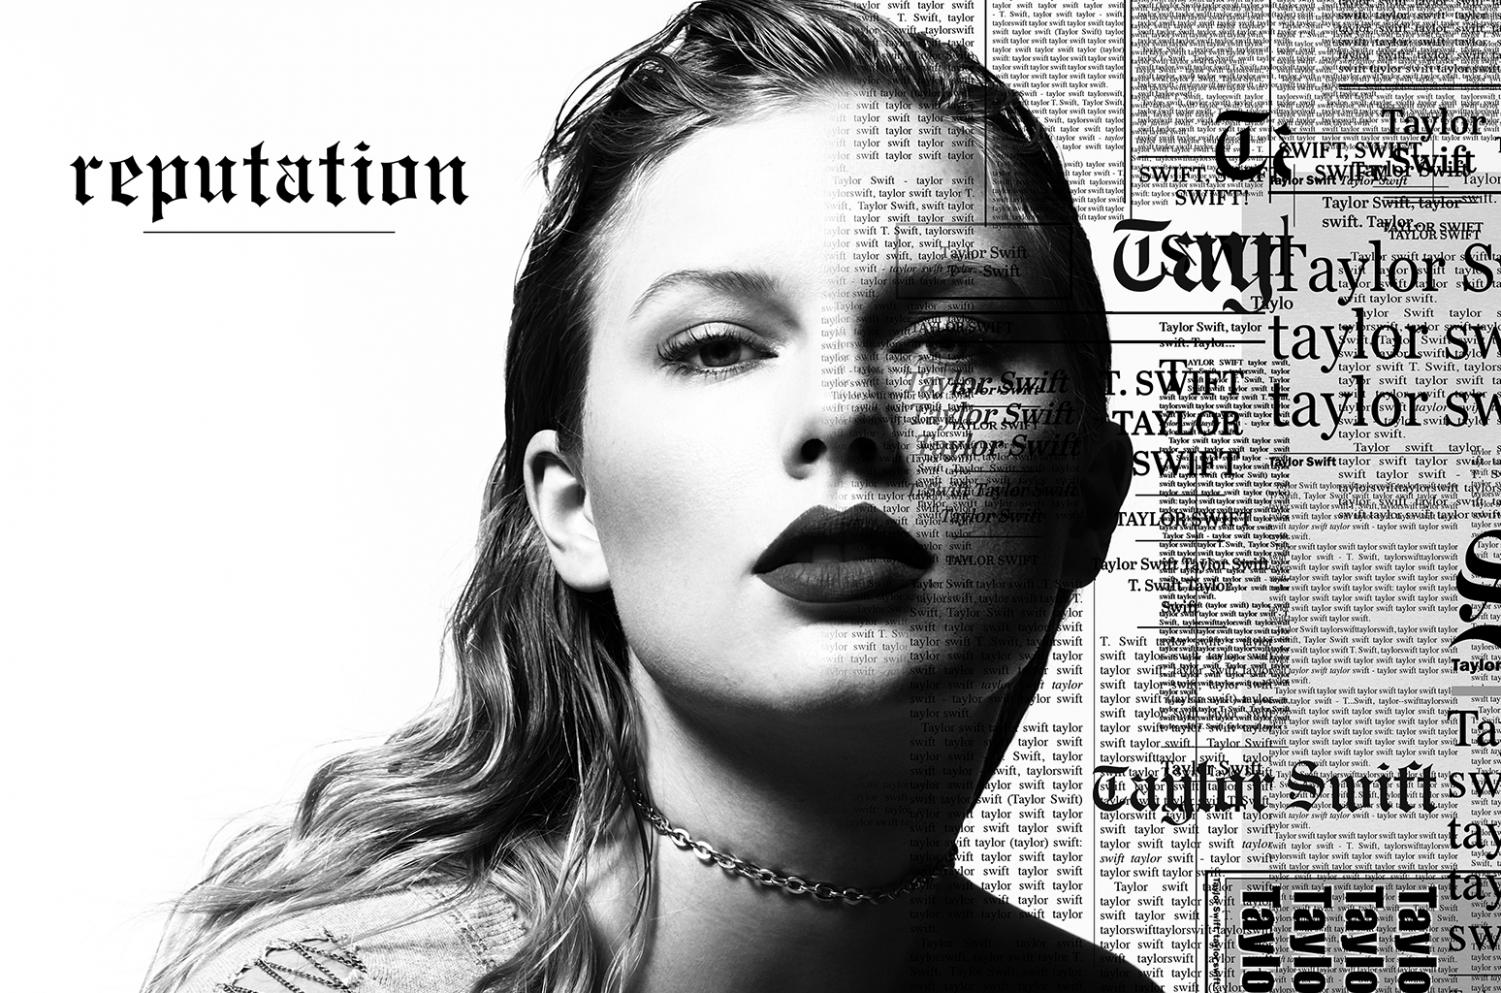 Picture Credit: http://www.billboard.com/files/media/Taylor-Swift-reputation-ART-2017-billboard-1548.jpg